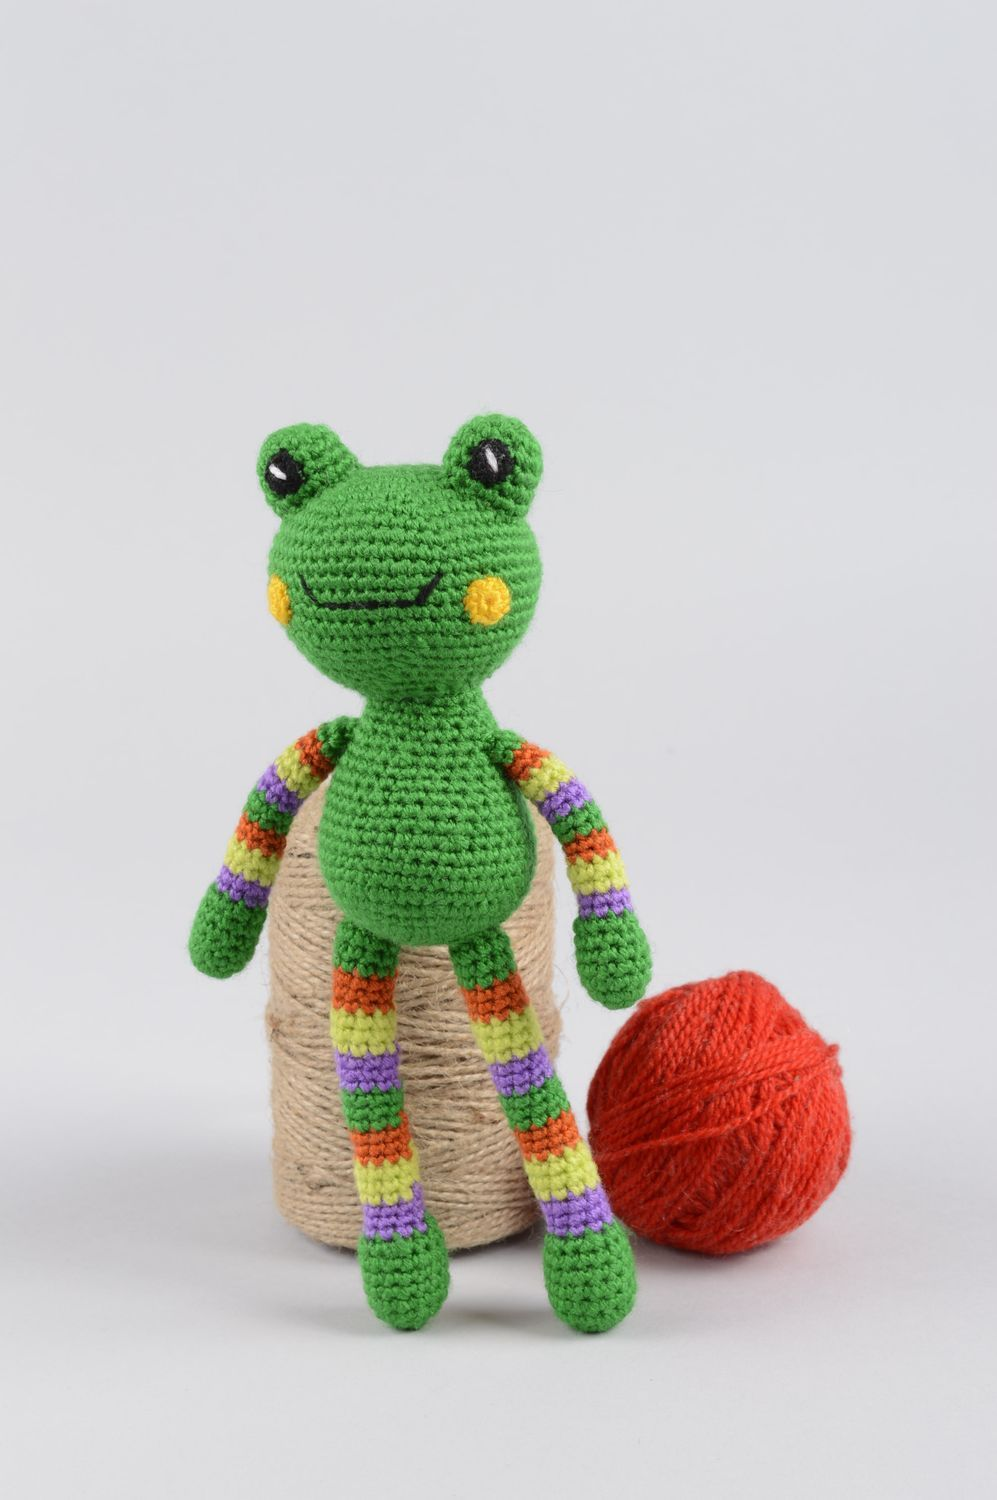 knitted toys Unusual handmade crochet toy childrens toys stuffed soft toy gifts for kids - MADEheart